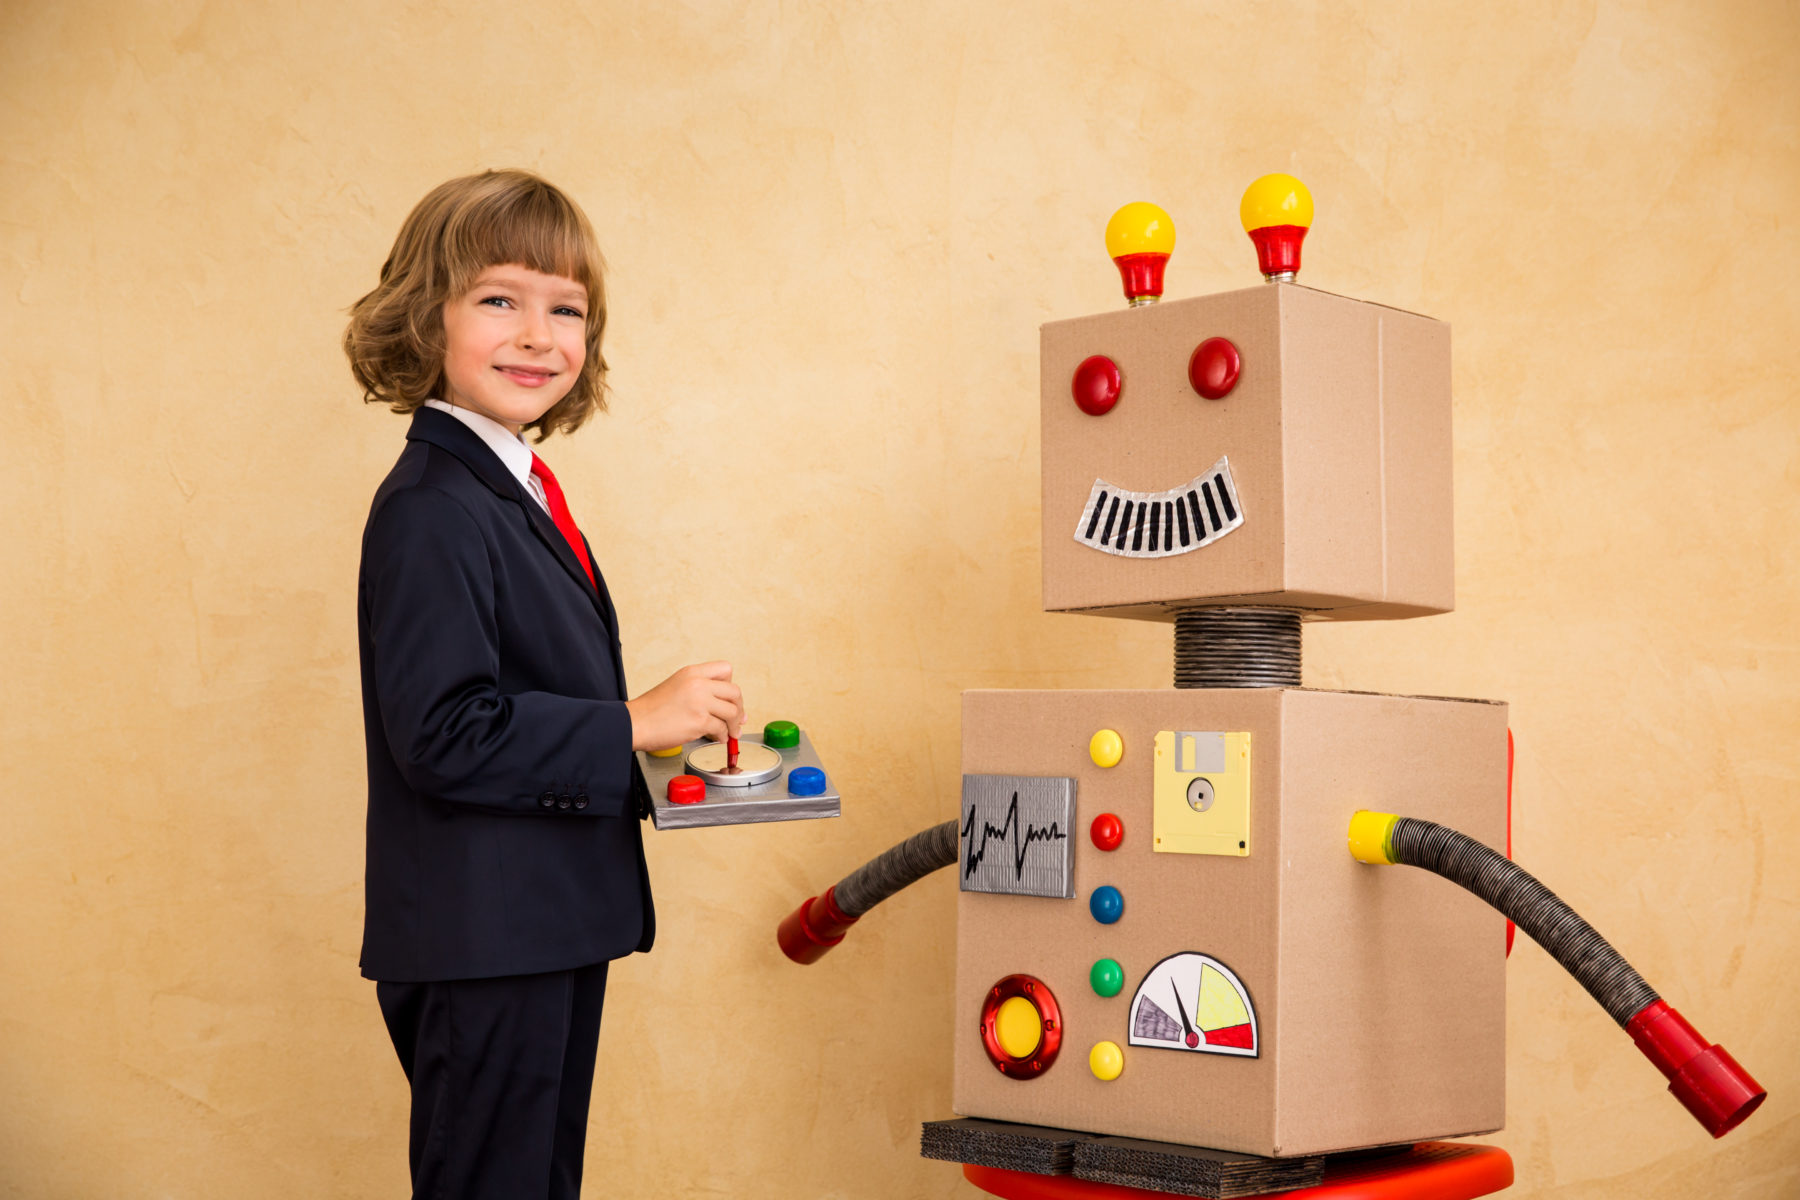 young-businessman-with-robot-PT8EBN8-e1541064148836-1.jpg